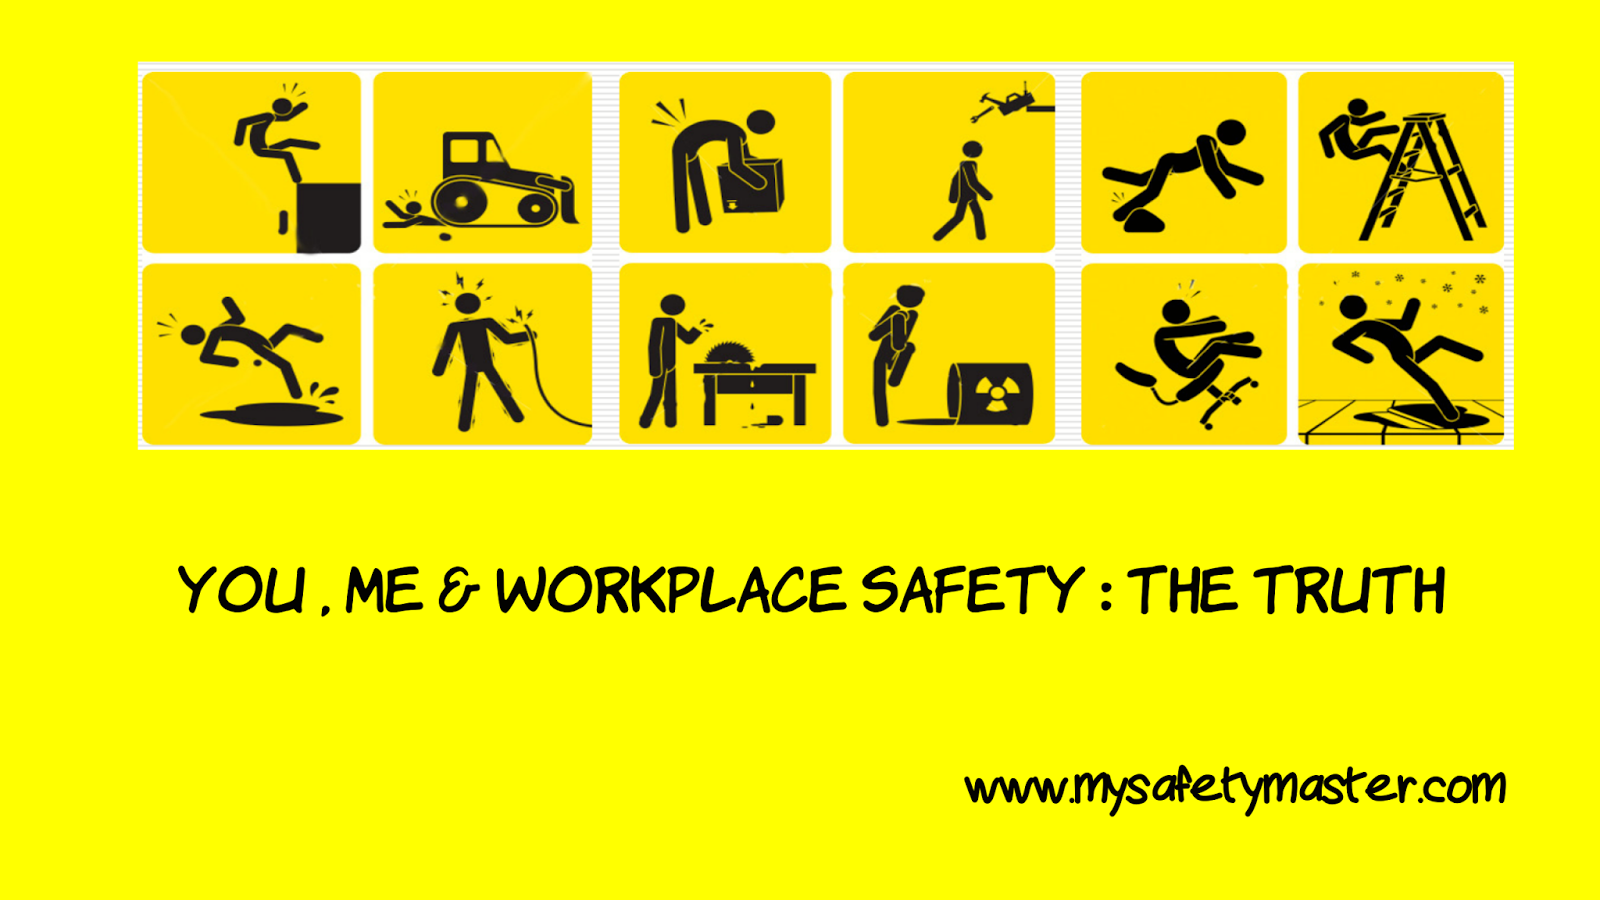 occupational safety and health in the The occupational safety and health ordinance provides for the safety and health protection to employees in workplaces, both industrial and non.